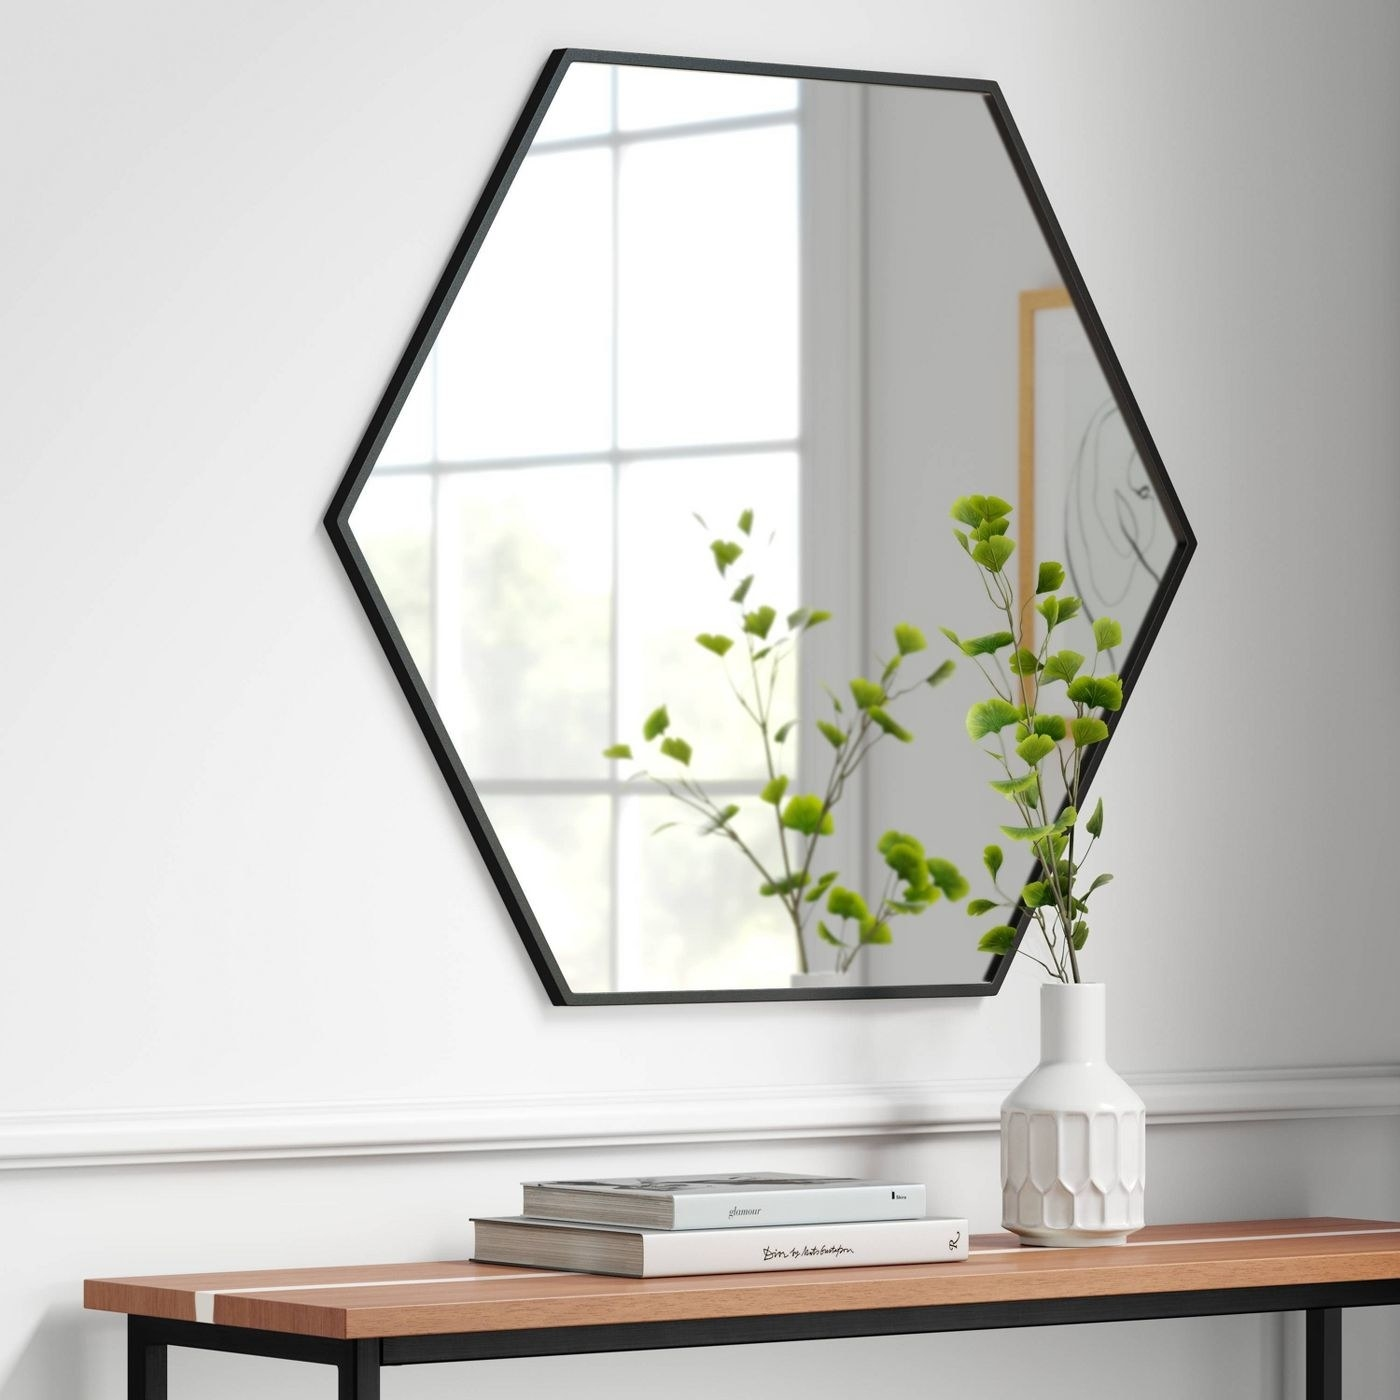 the mirror with a thin black frame